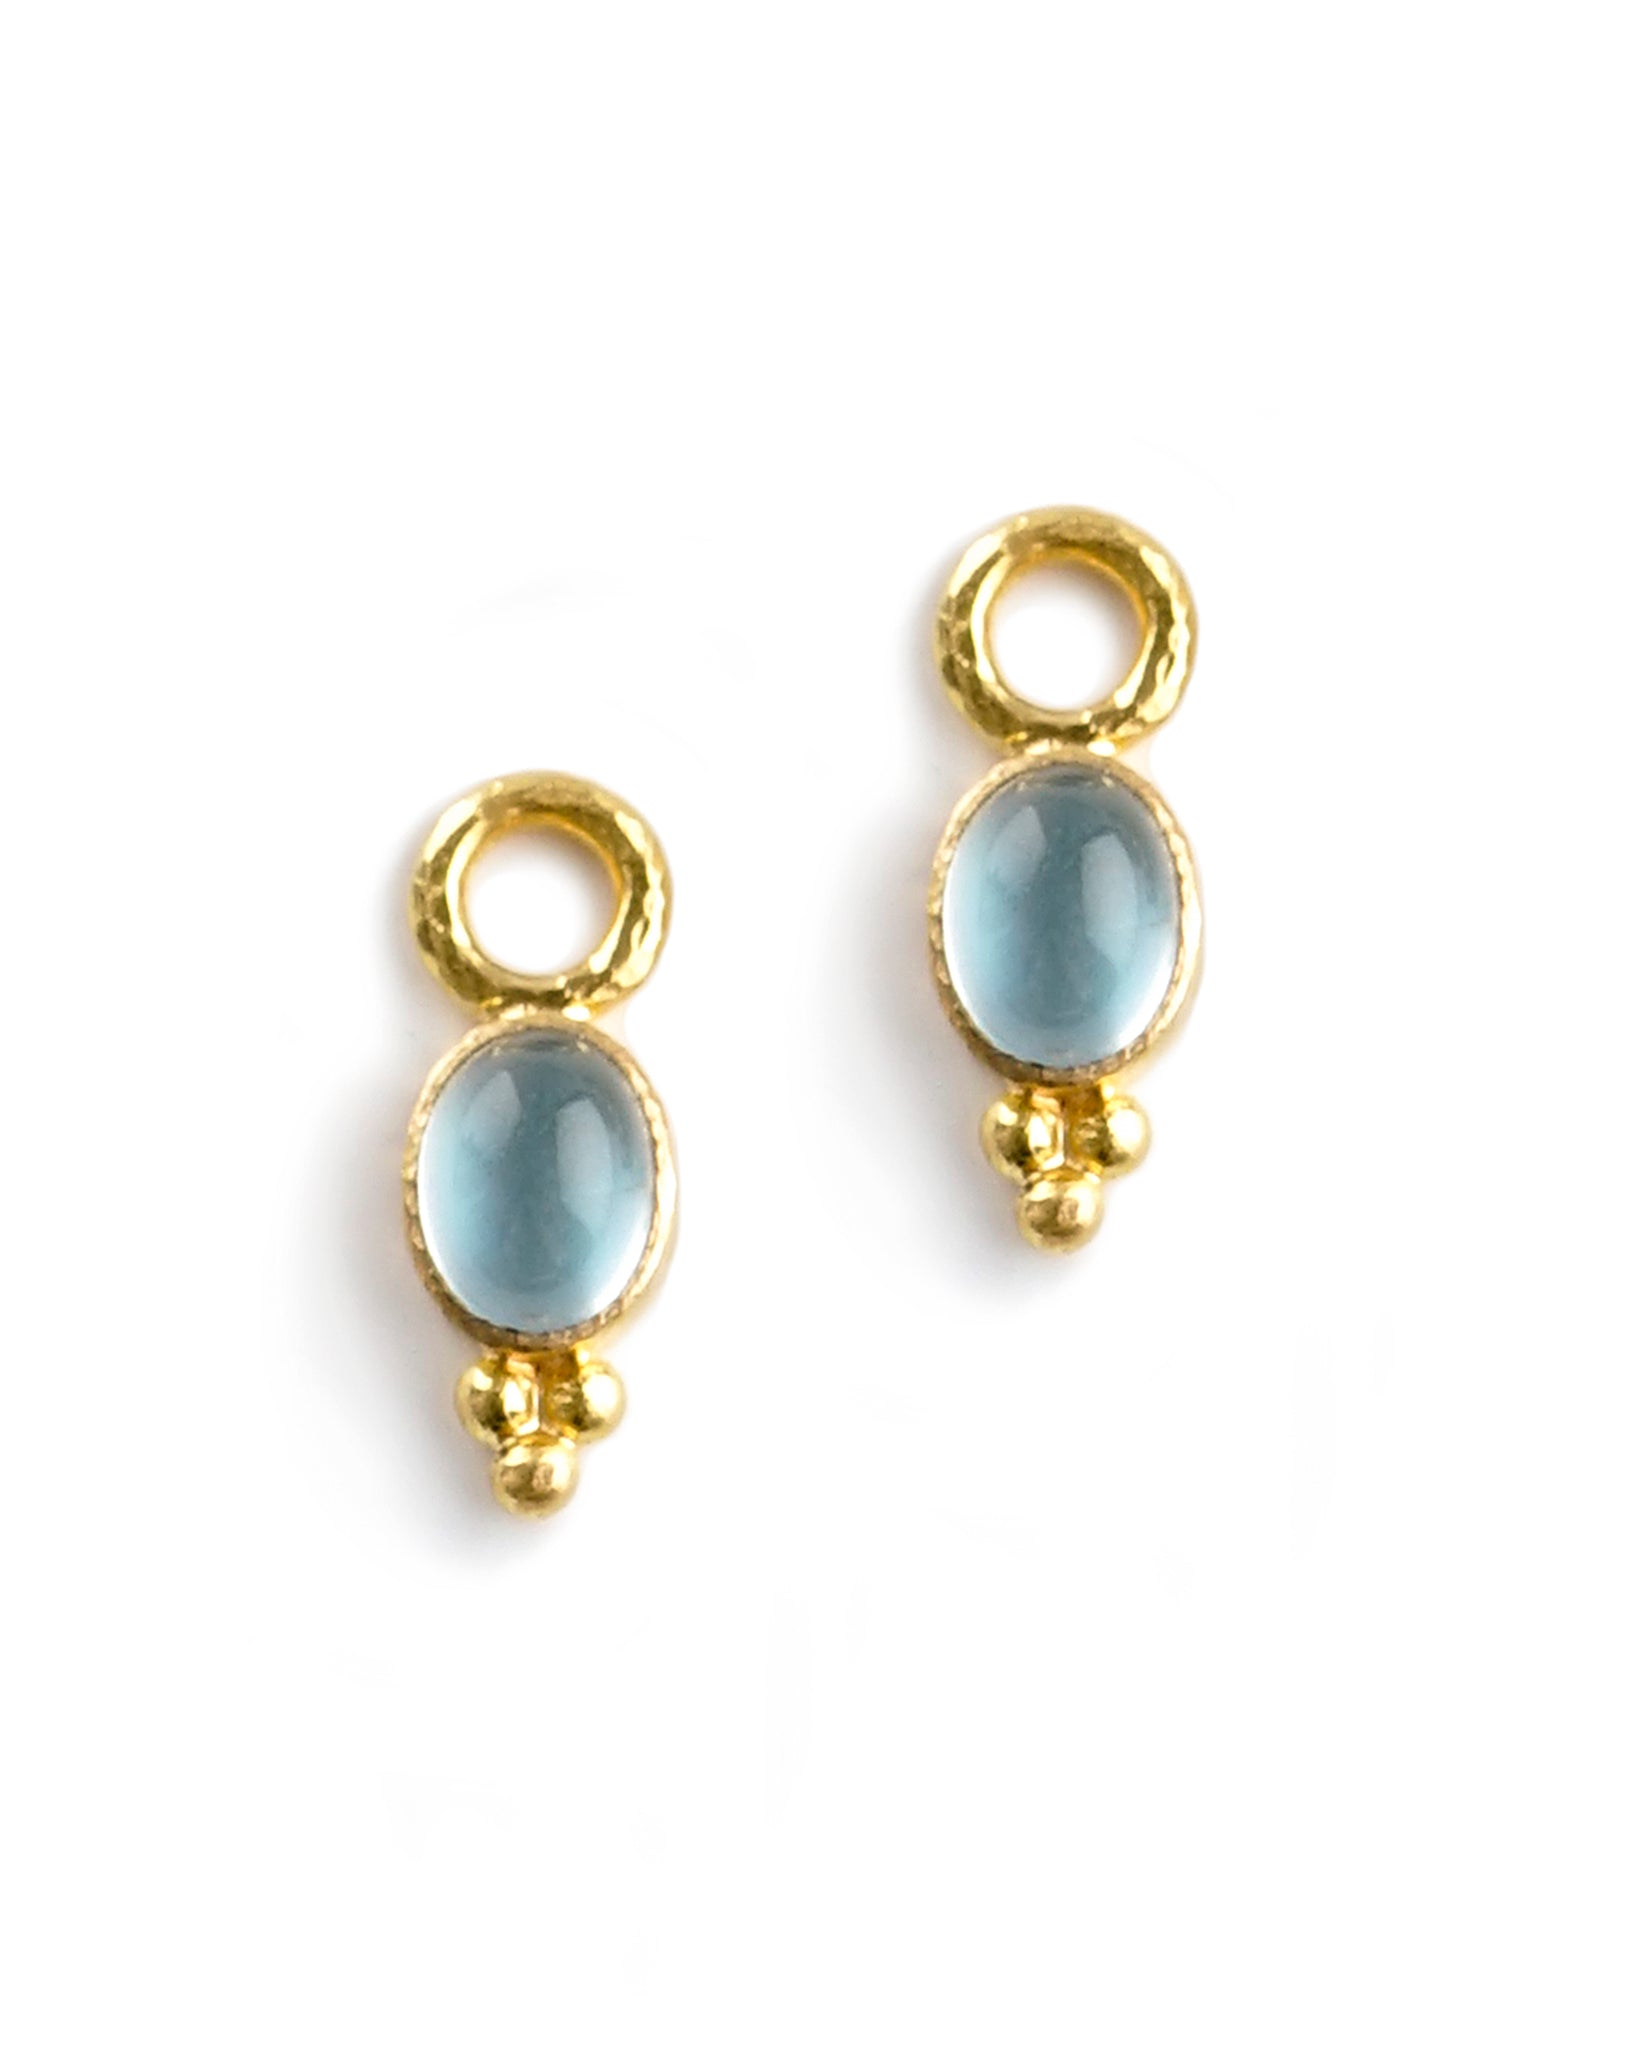 Elizabeth Locke Light Aqua Earring Charms